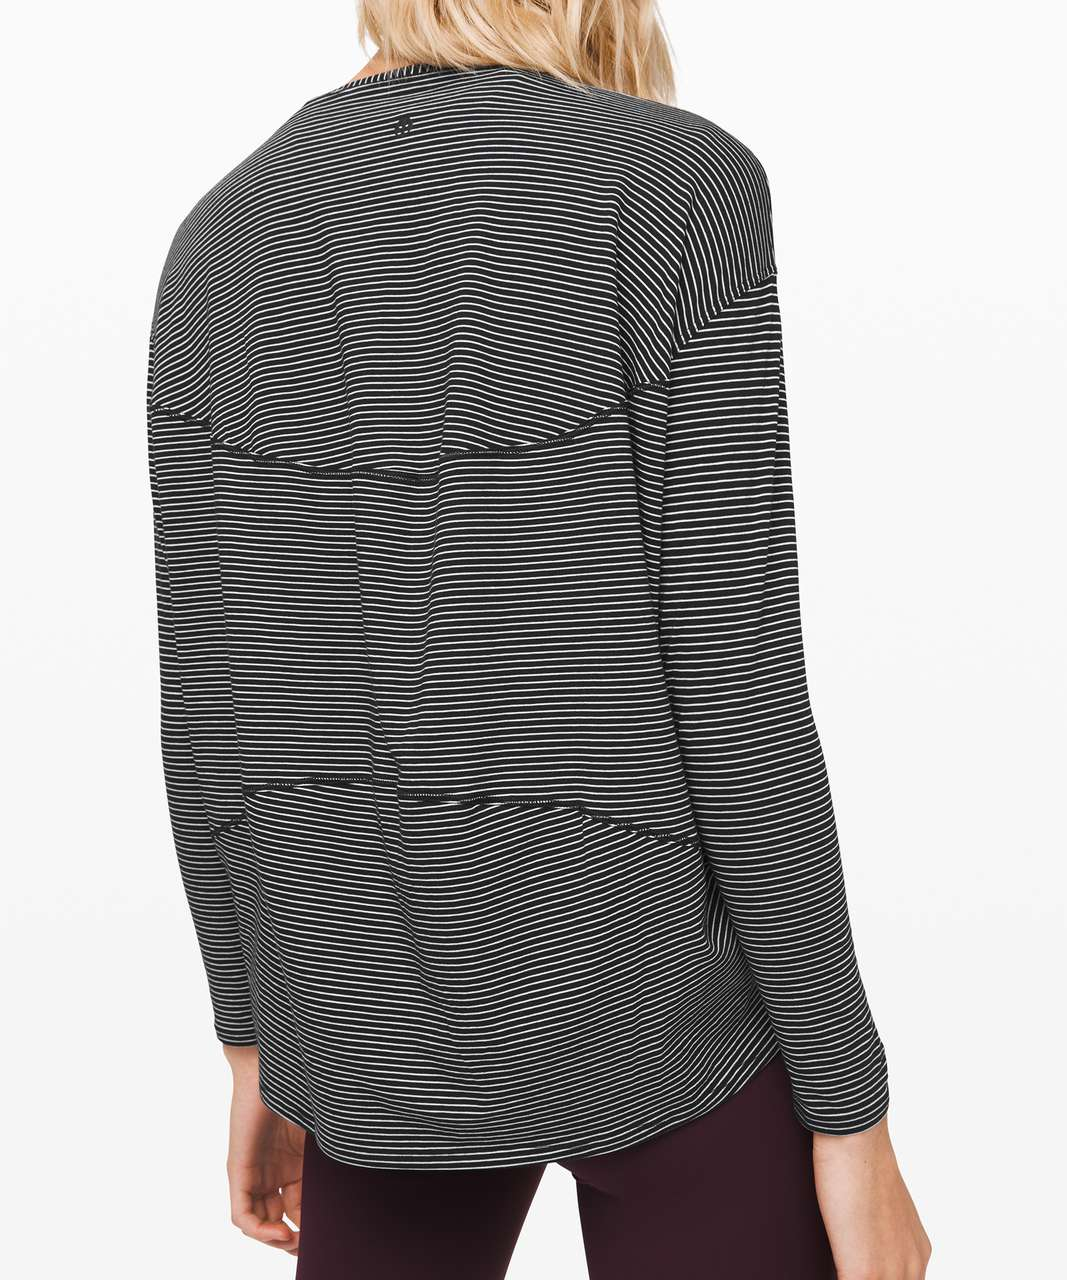 Lululemon Back In Action Long Sleeve - Hype Stripe Black White (First Release)